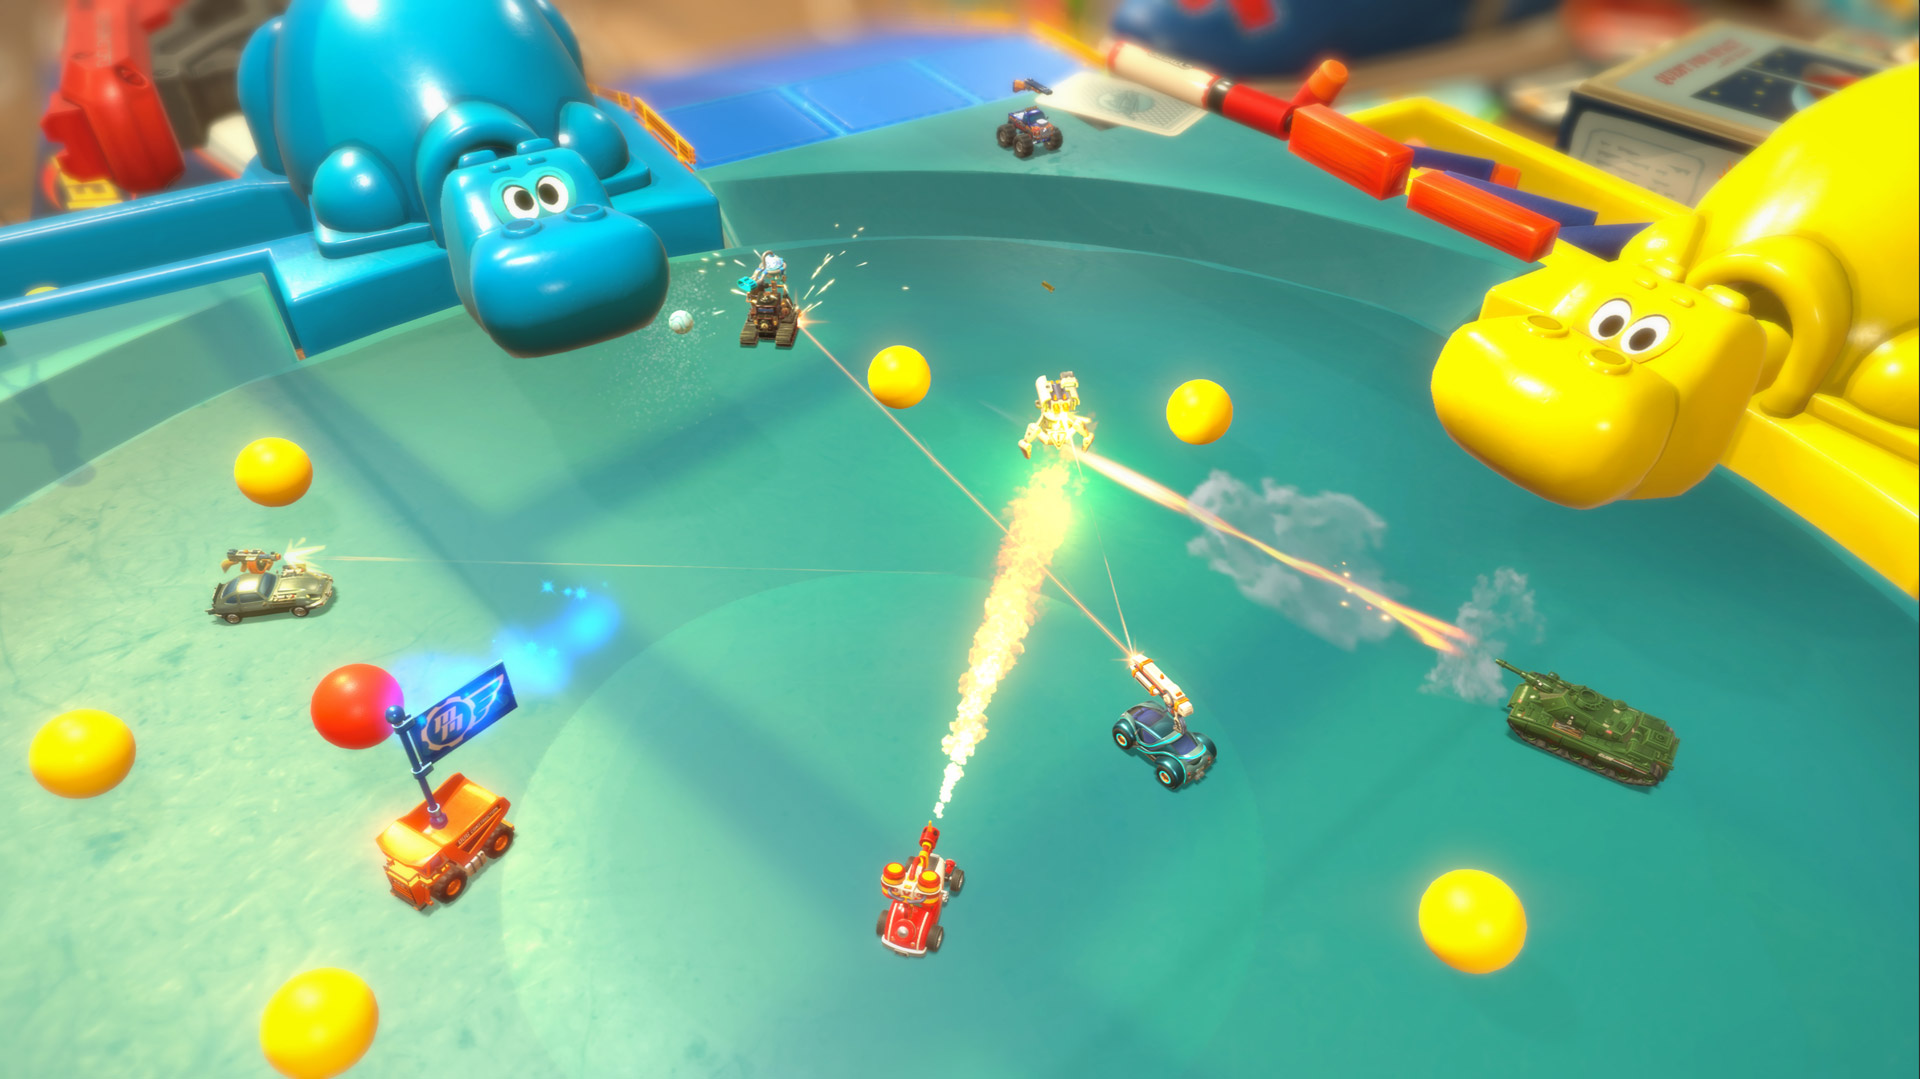 New Micro Machines game brings vehicular deathmatch to